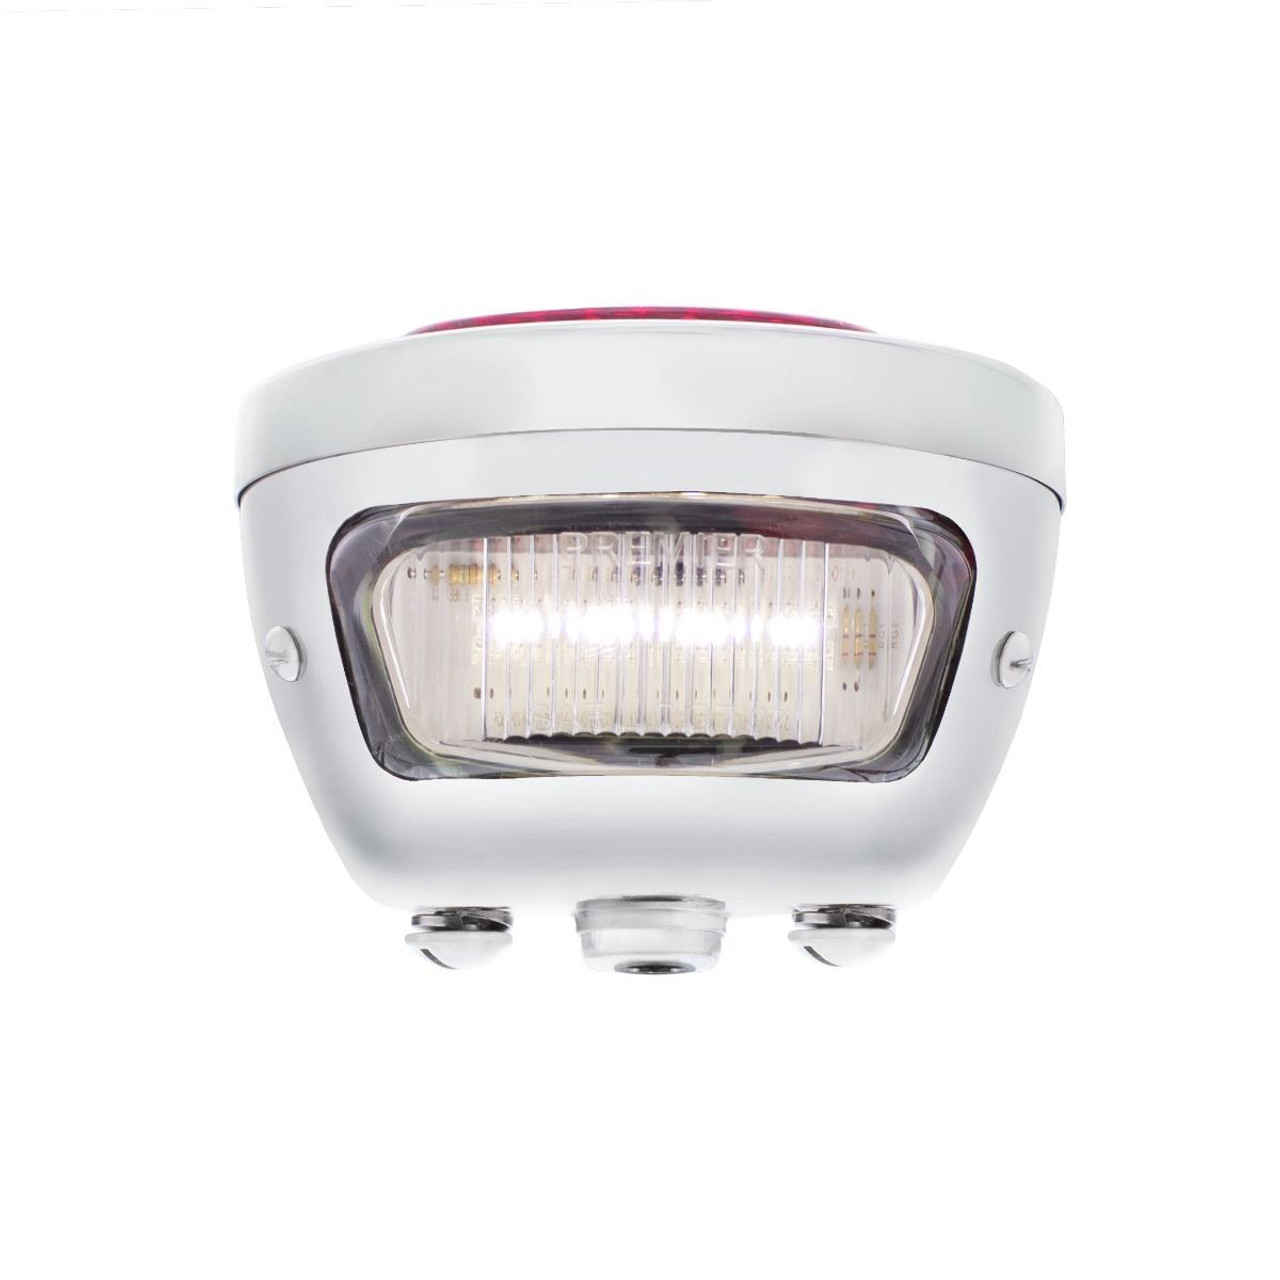 31 LED Sequential Tail Light, Stainless Steel, 1928-31 Ford Car,  Left Hand Side